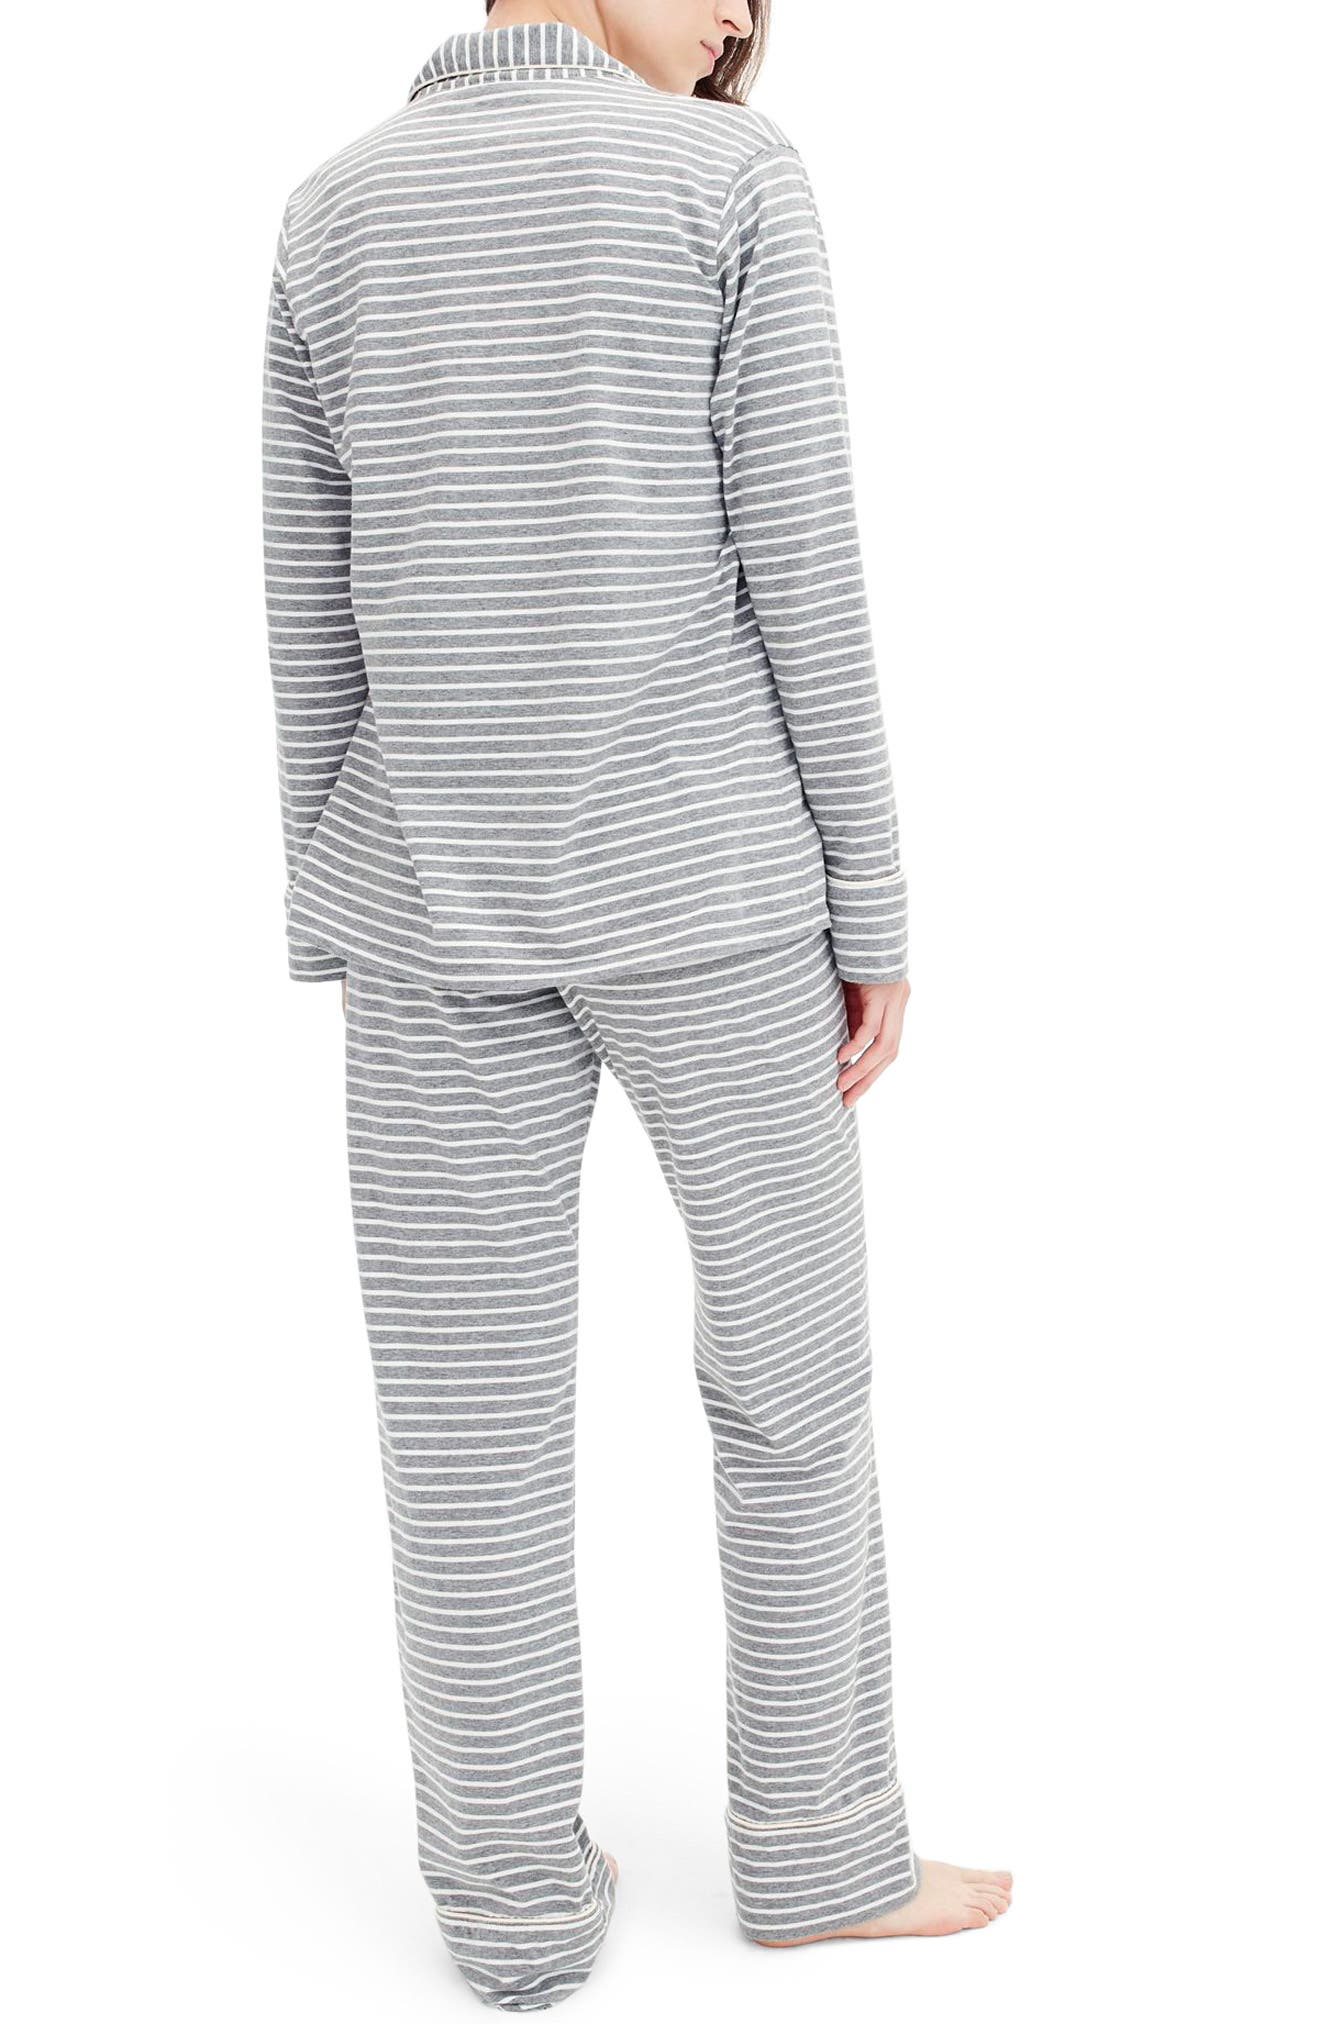 Dreamy Stripe Cotton Pajamas,                             Alternate thumbnail 2, color,                             020